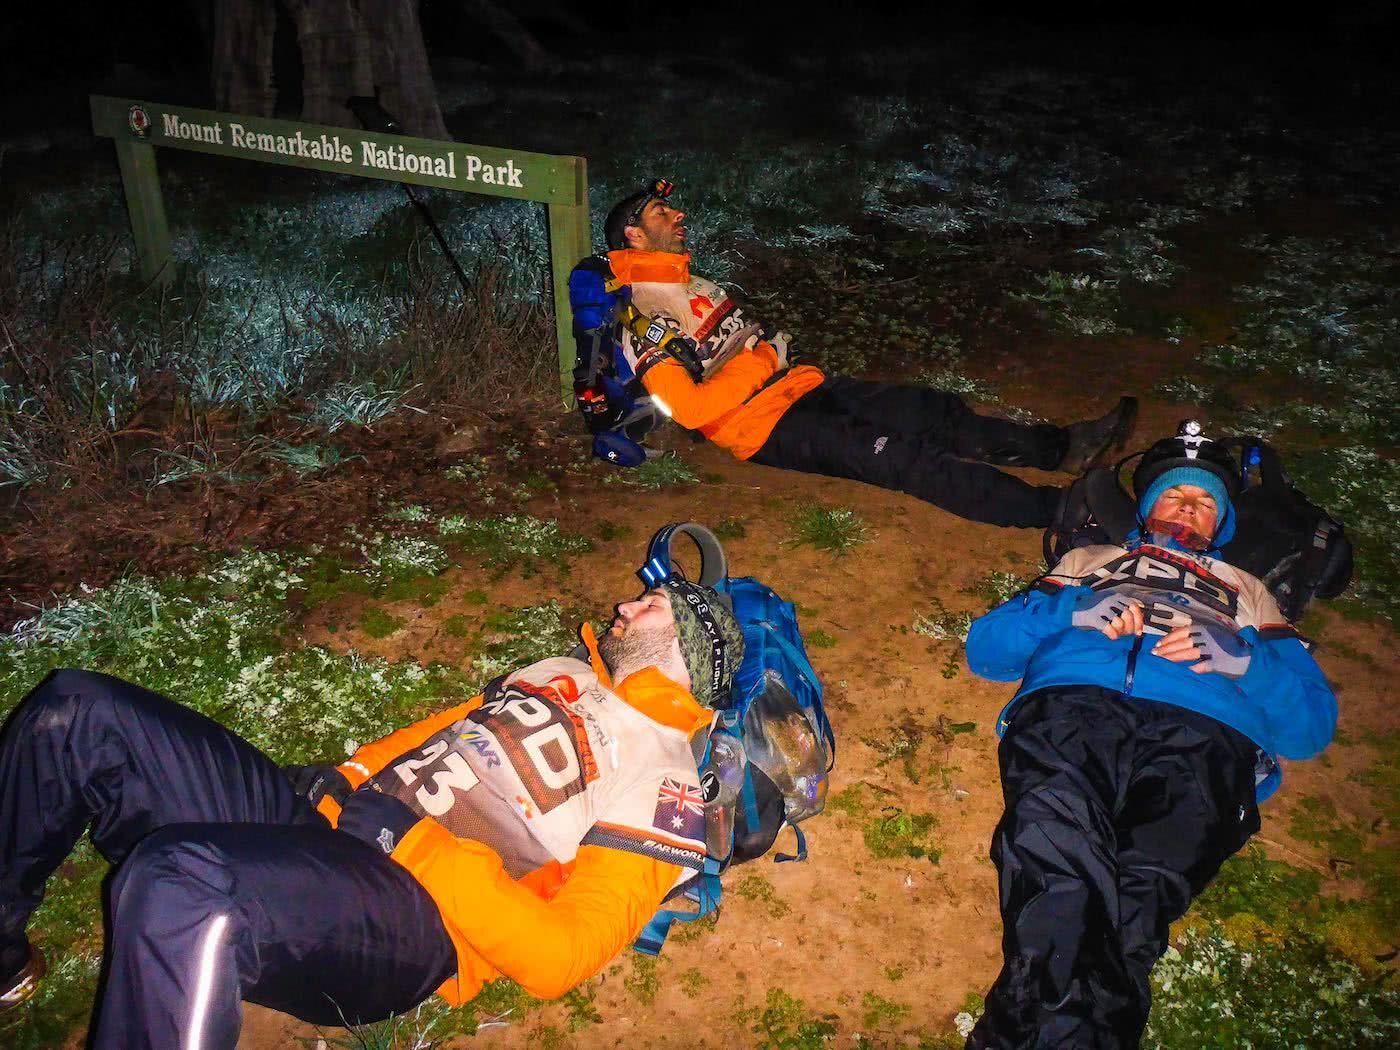 Adventure Racing 101 // How, What, Why...And Why Again? Emily Rowbotham, photo by David Barlow, Mid race power naps, sleeping rough, open air